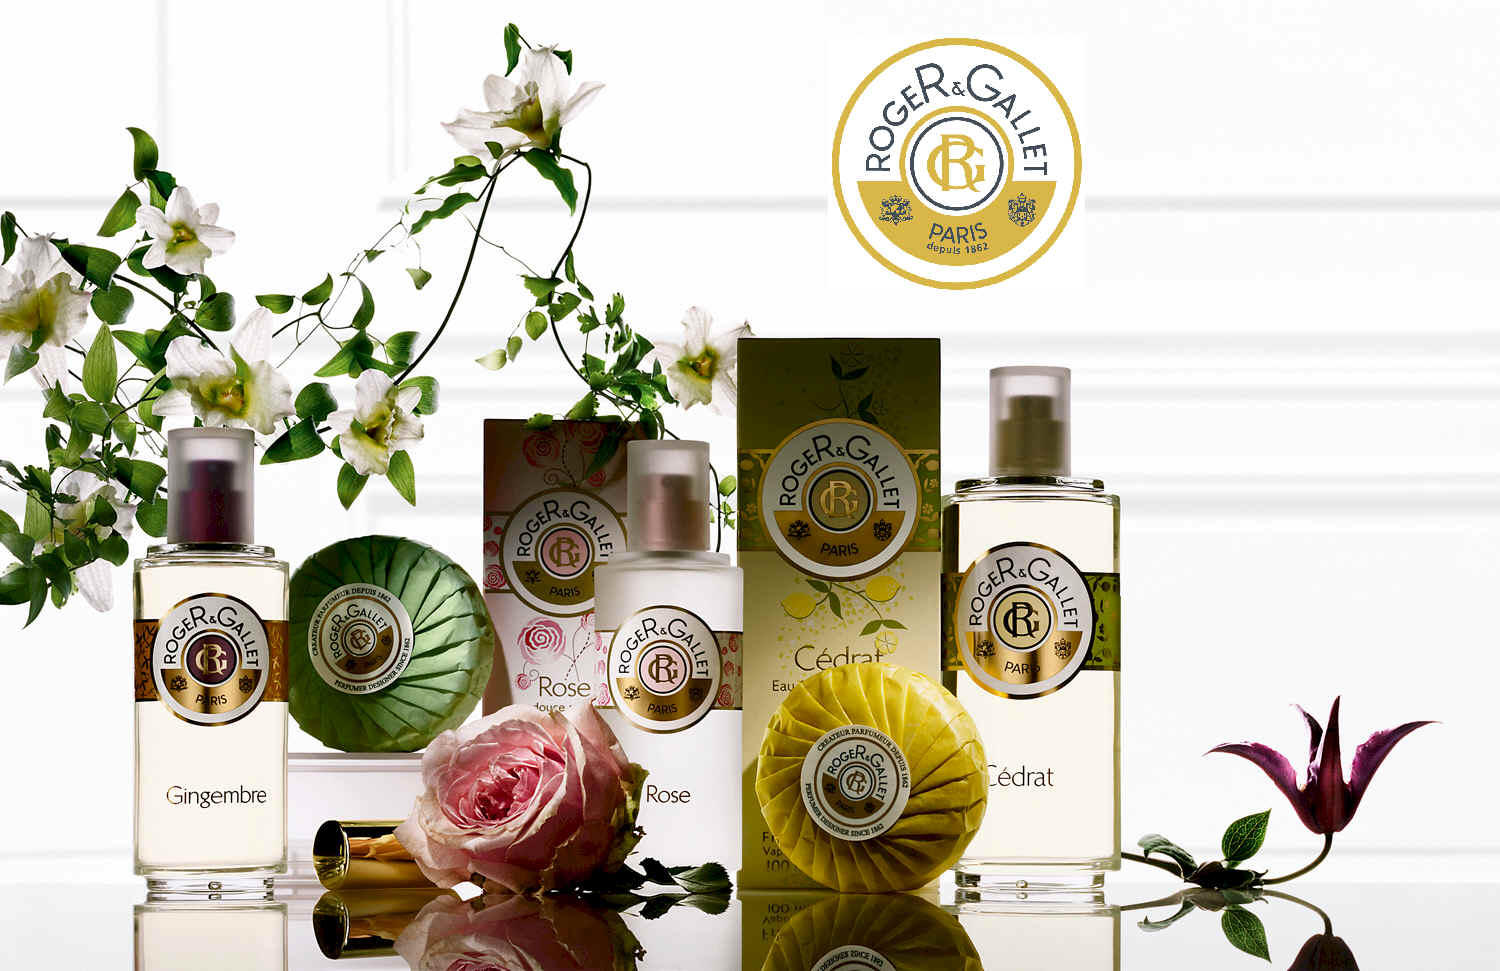 33% Off + Extra 10% Off Roger & Gallet Body Care Product @ lookfantastic.com (US & CA)